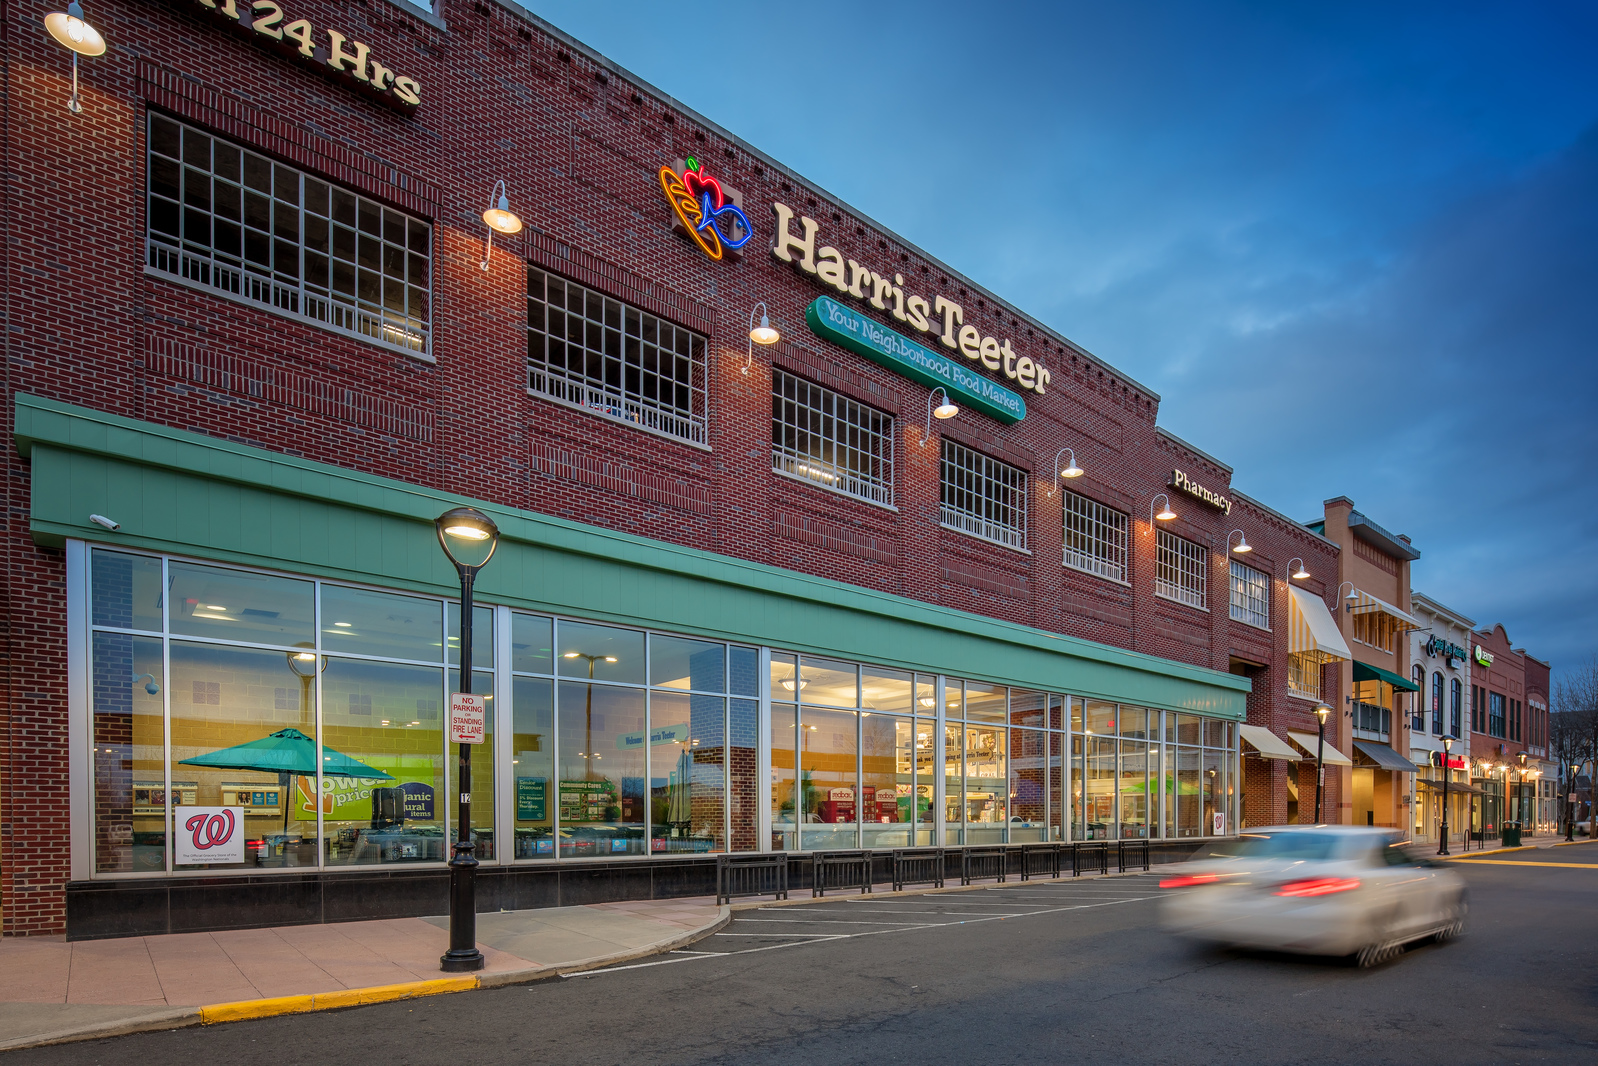 Take advantage of local favorite Harris Teeter for your weekly grocery run.